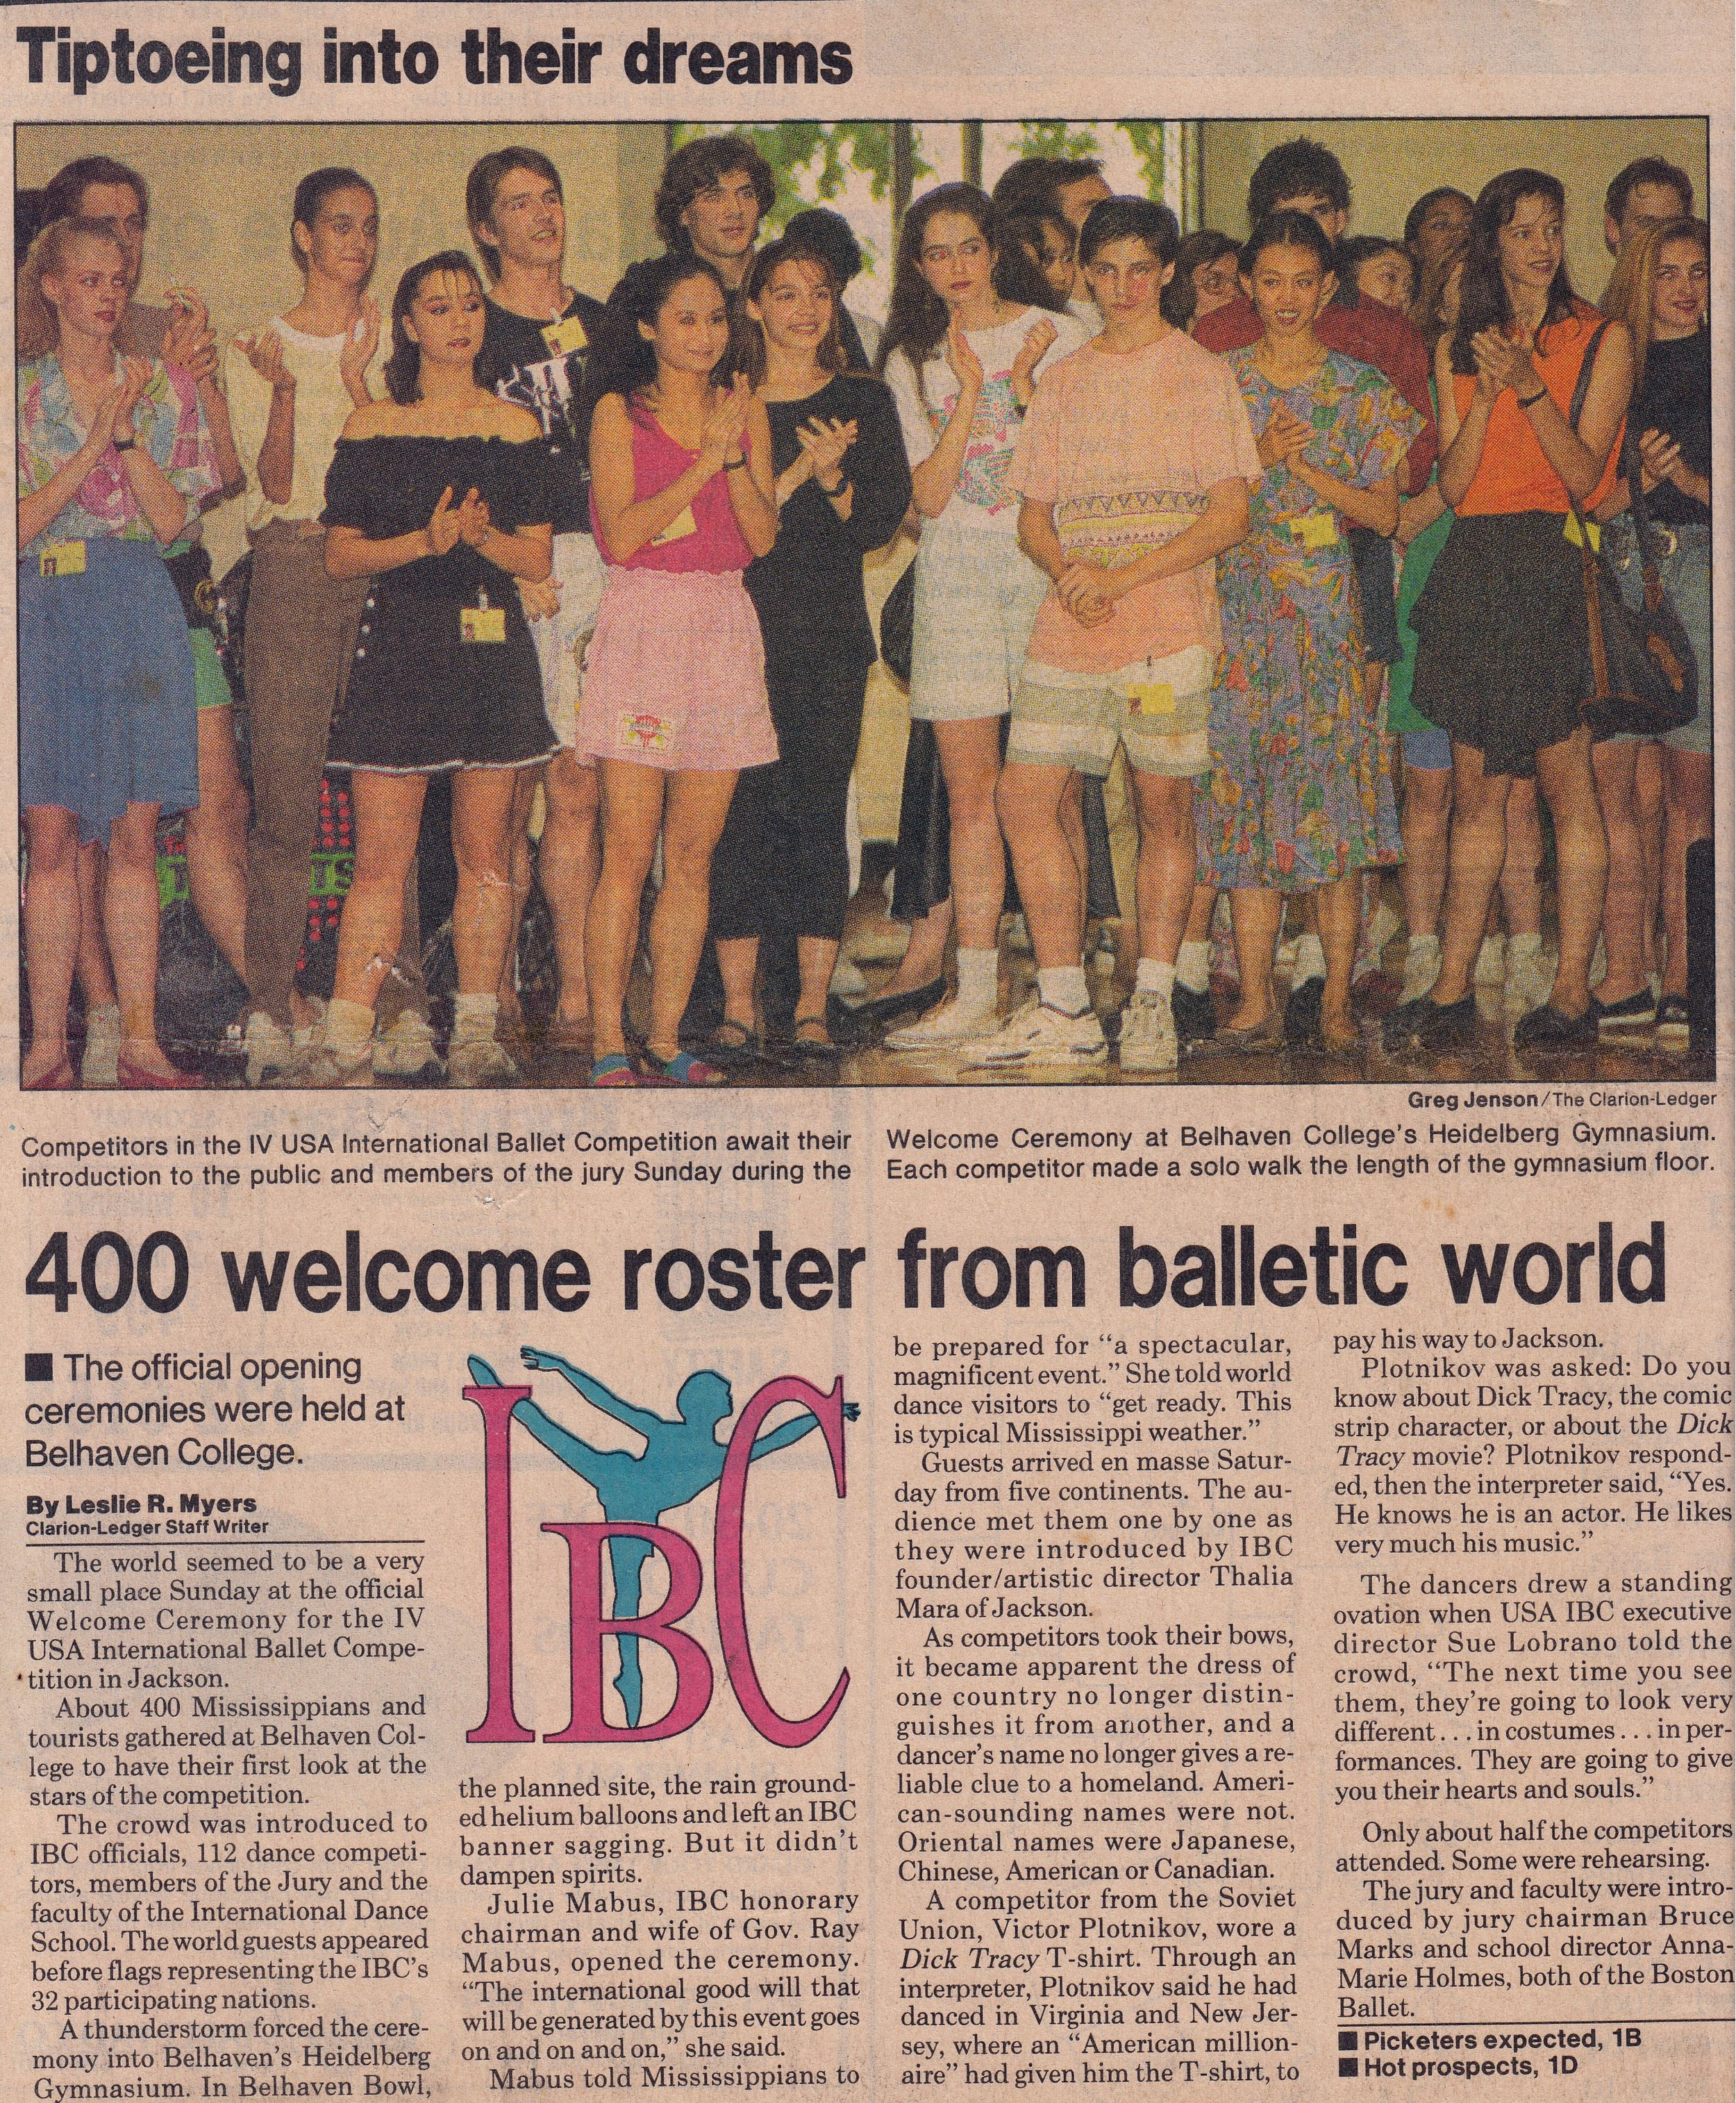 The local newspaper in Jackson,    The Clarion-Ledger   , features a report on the arrival of competing ballerinas and danseurs. The front-page photo shows Lisa (third from left) and fellow participants as they attend the official opening ceremonies at Belhaven College. In 1990, IBC is said to have welcomed 112 competitors from 32 countries.